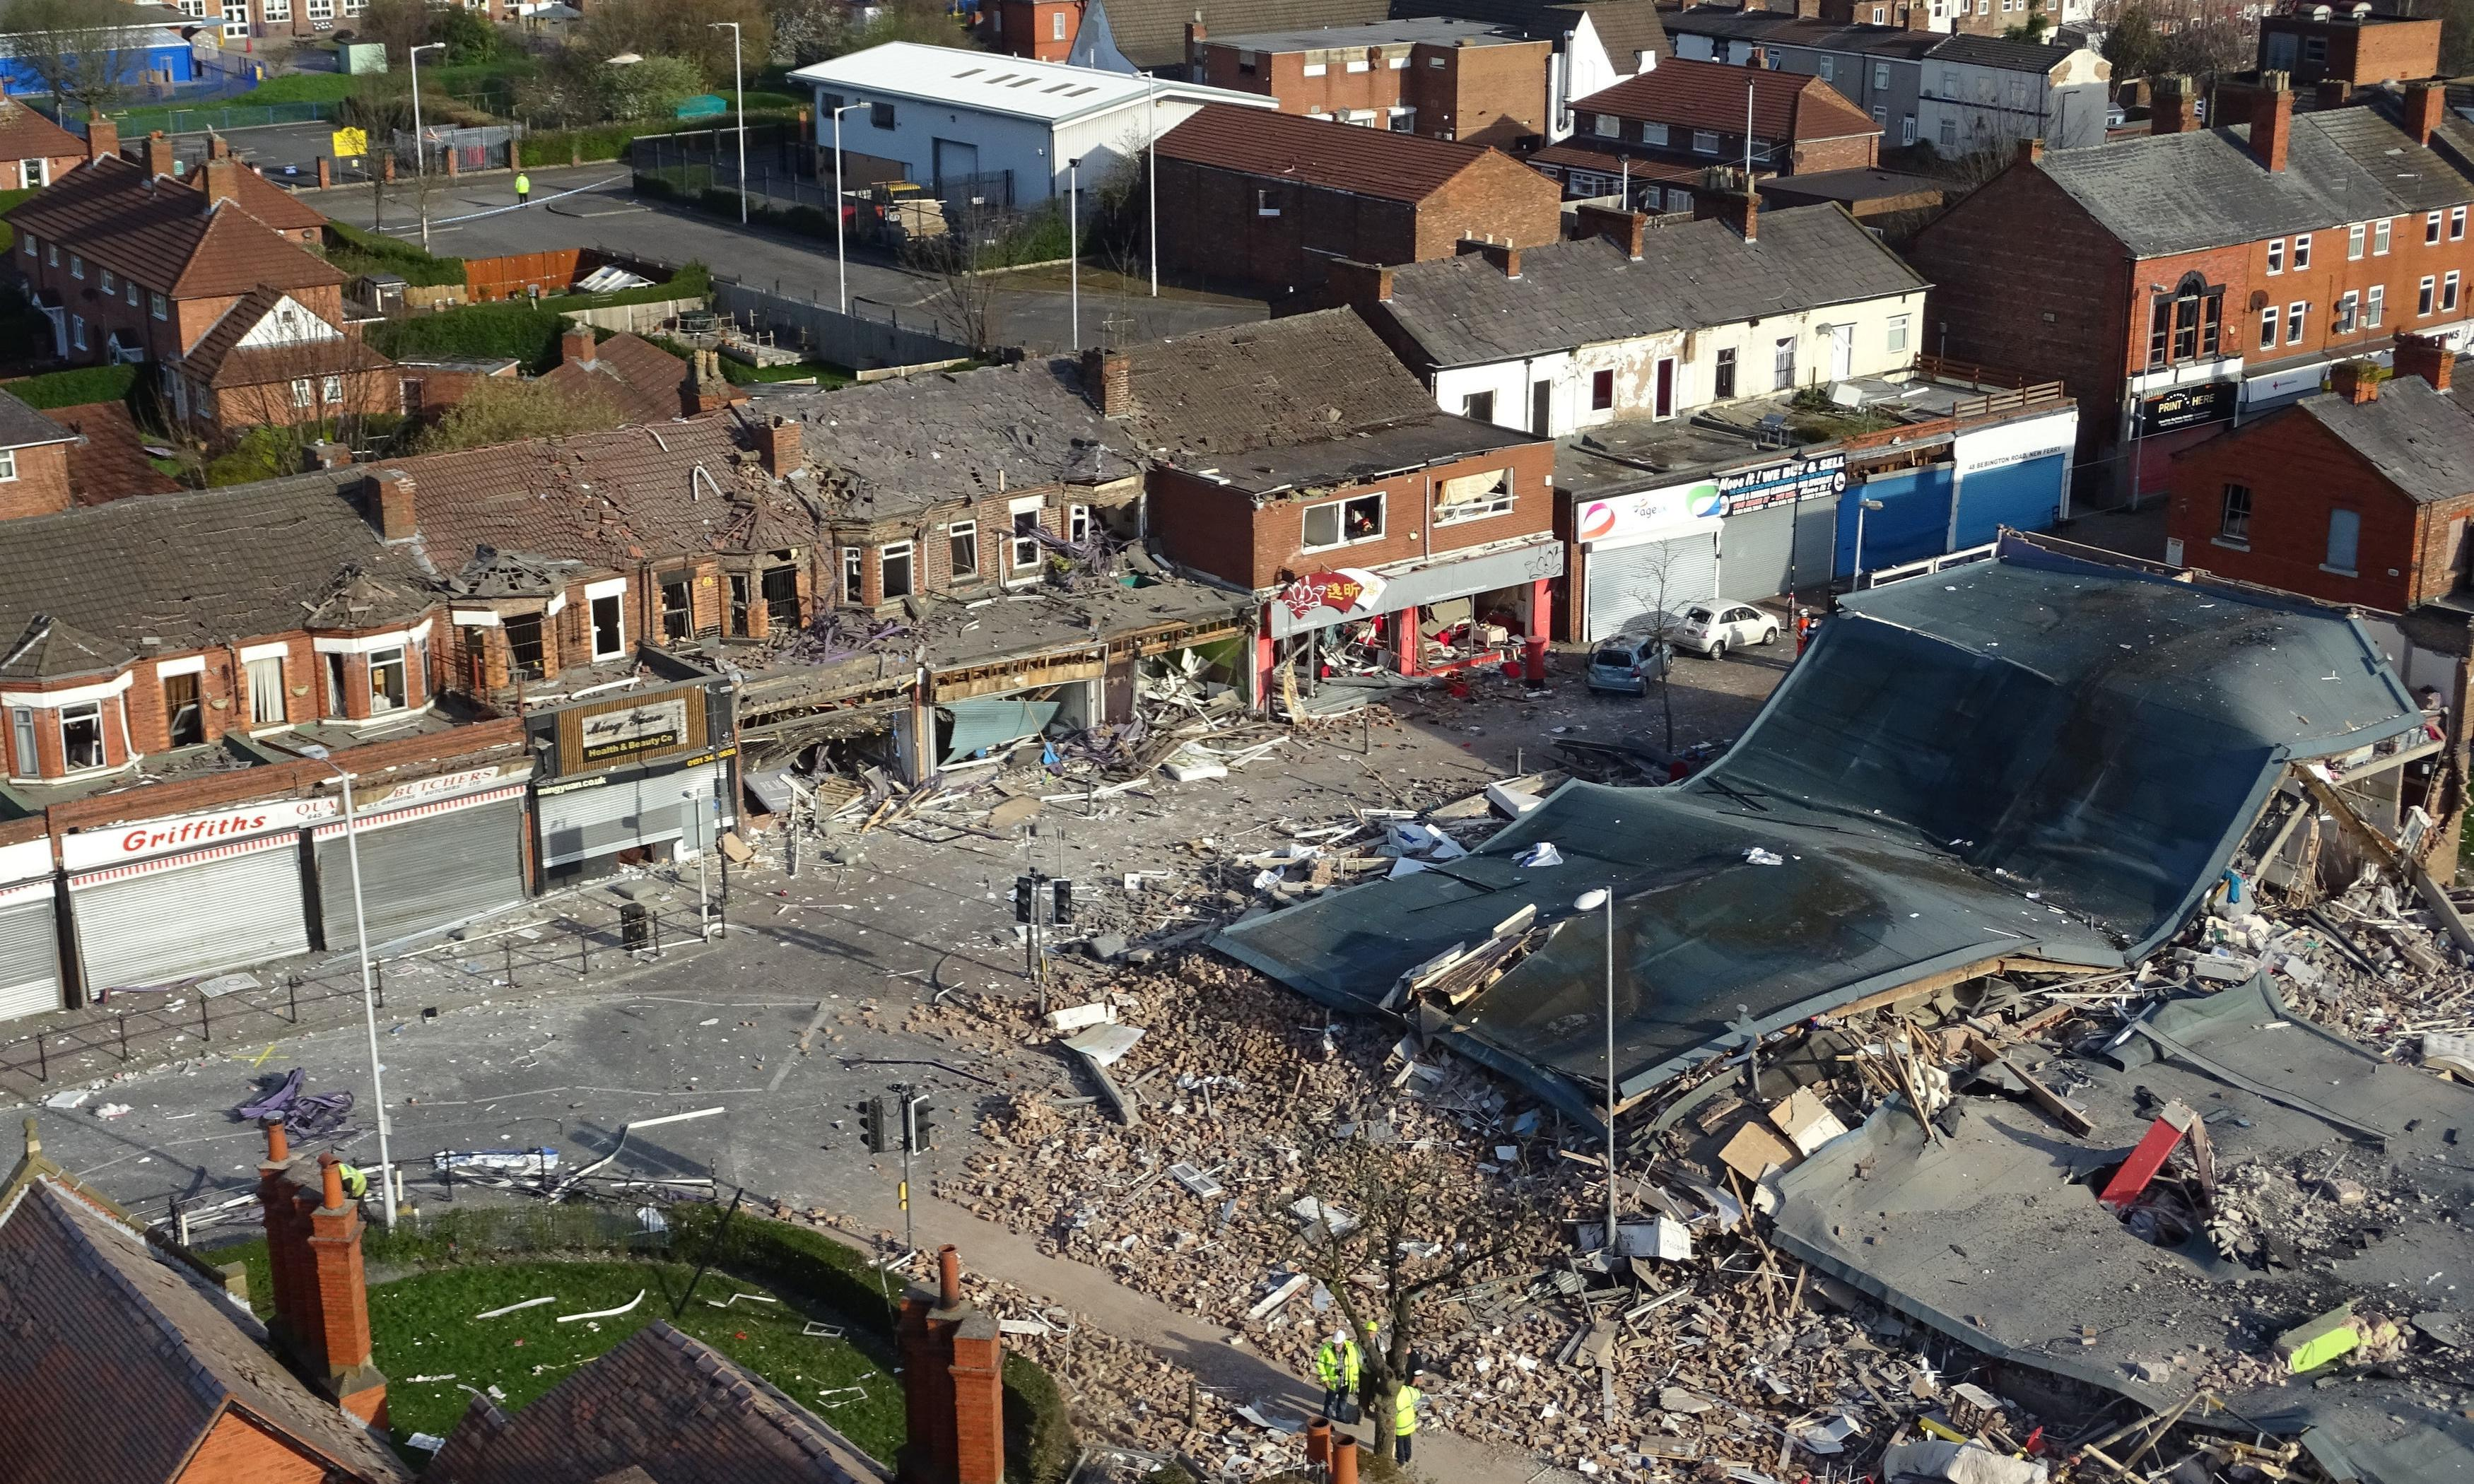 Shop owner jailed after insurance claim attempt caused 'colossal' blast